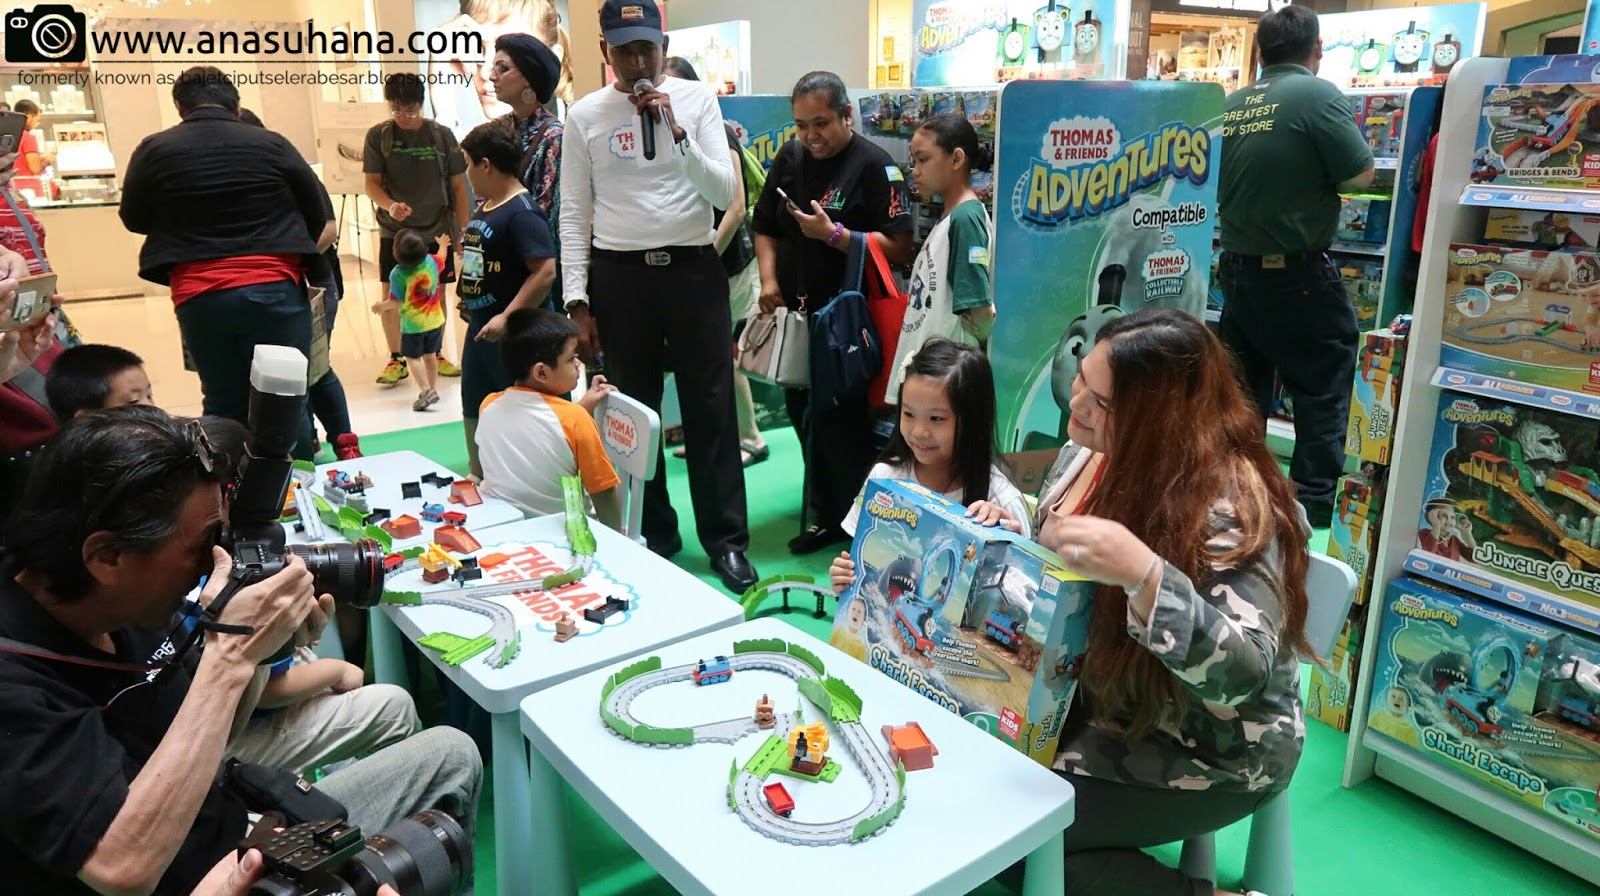 Jom Sertai Thomas & Friends Adventures di Sunway Putra Mall